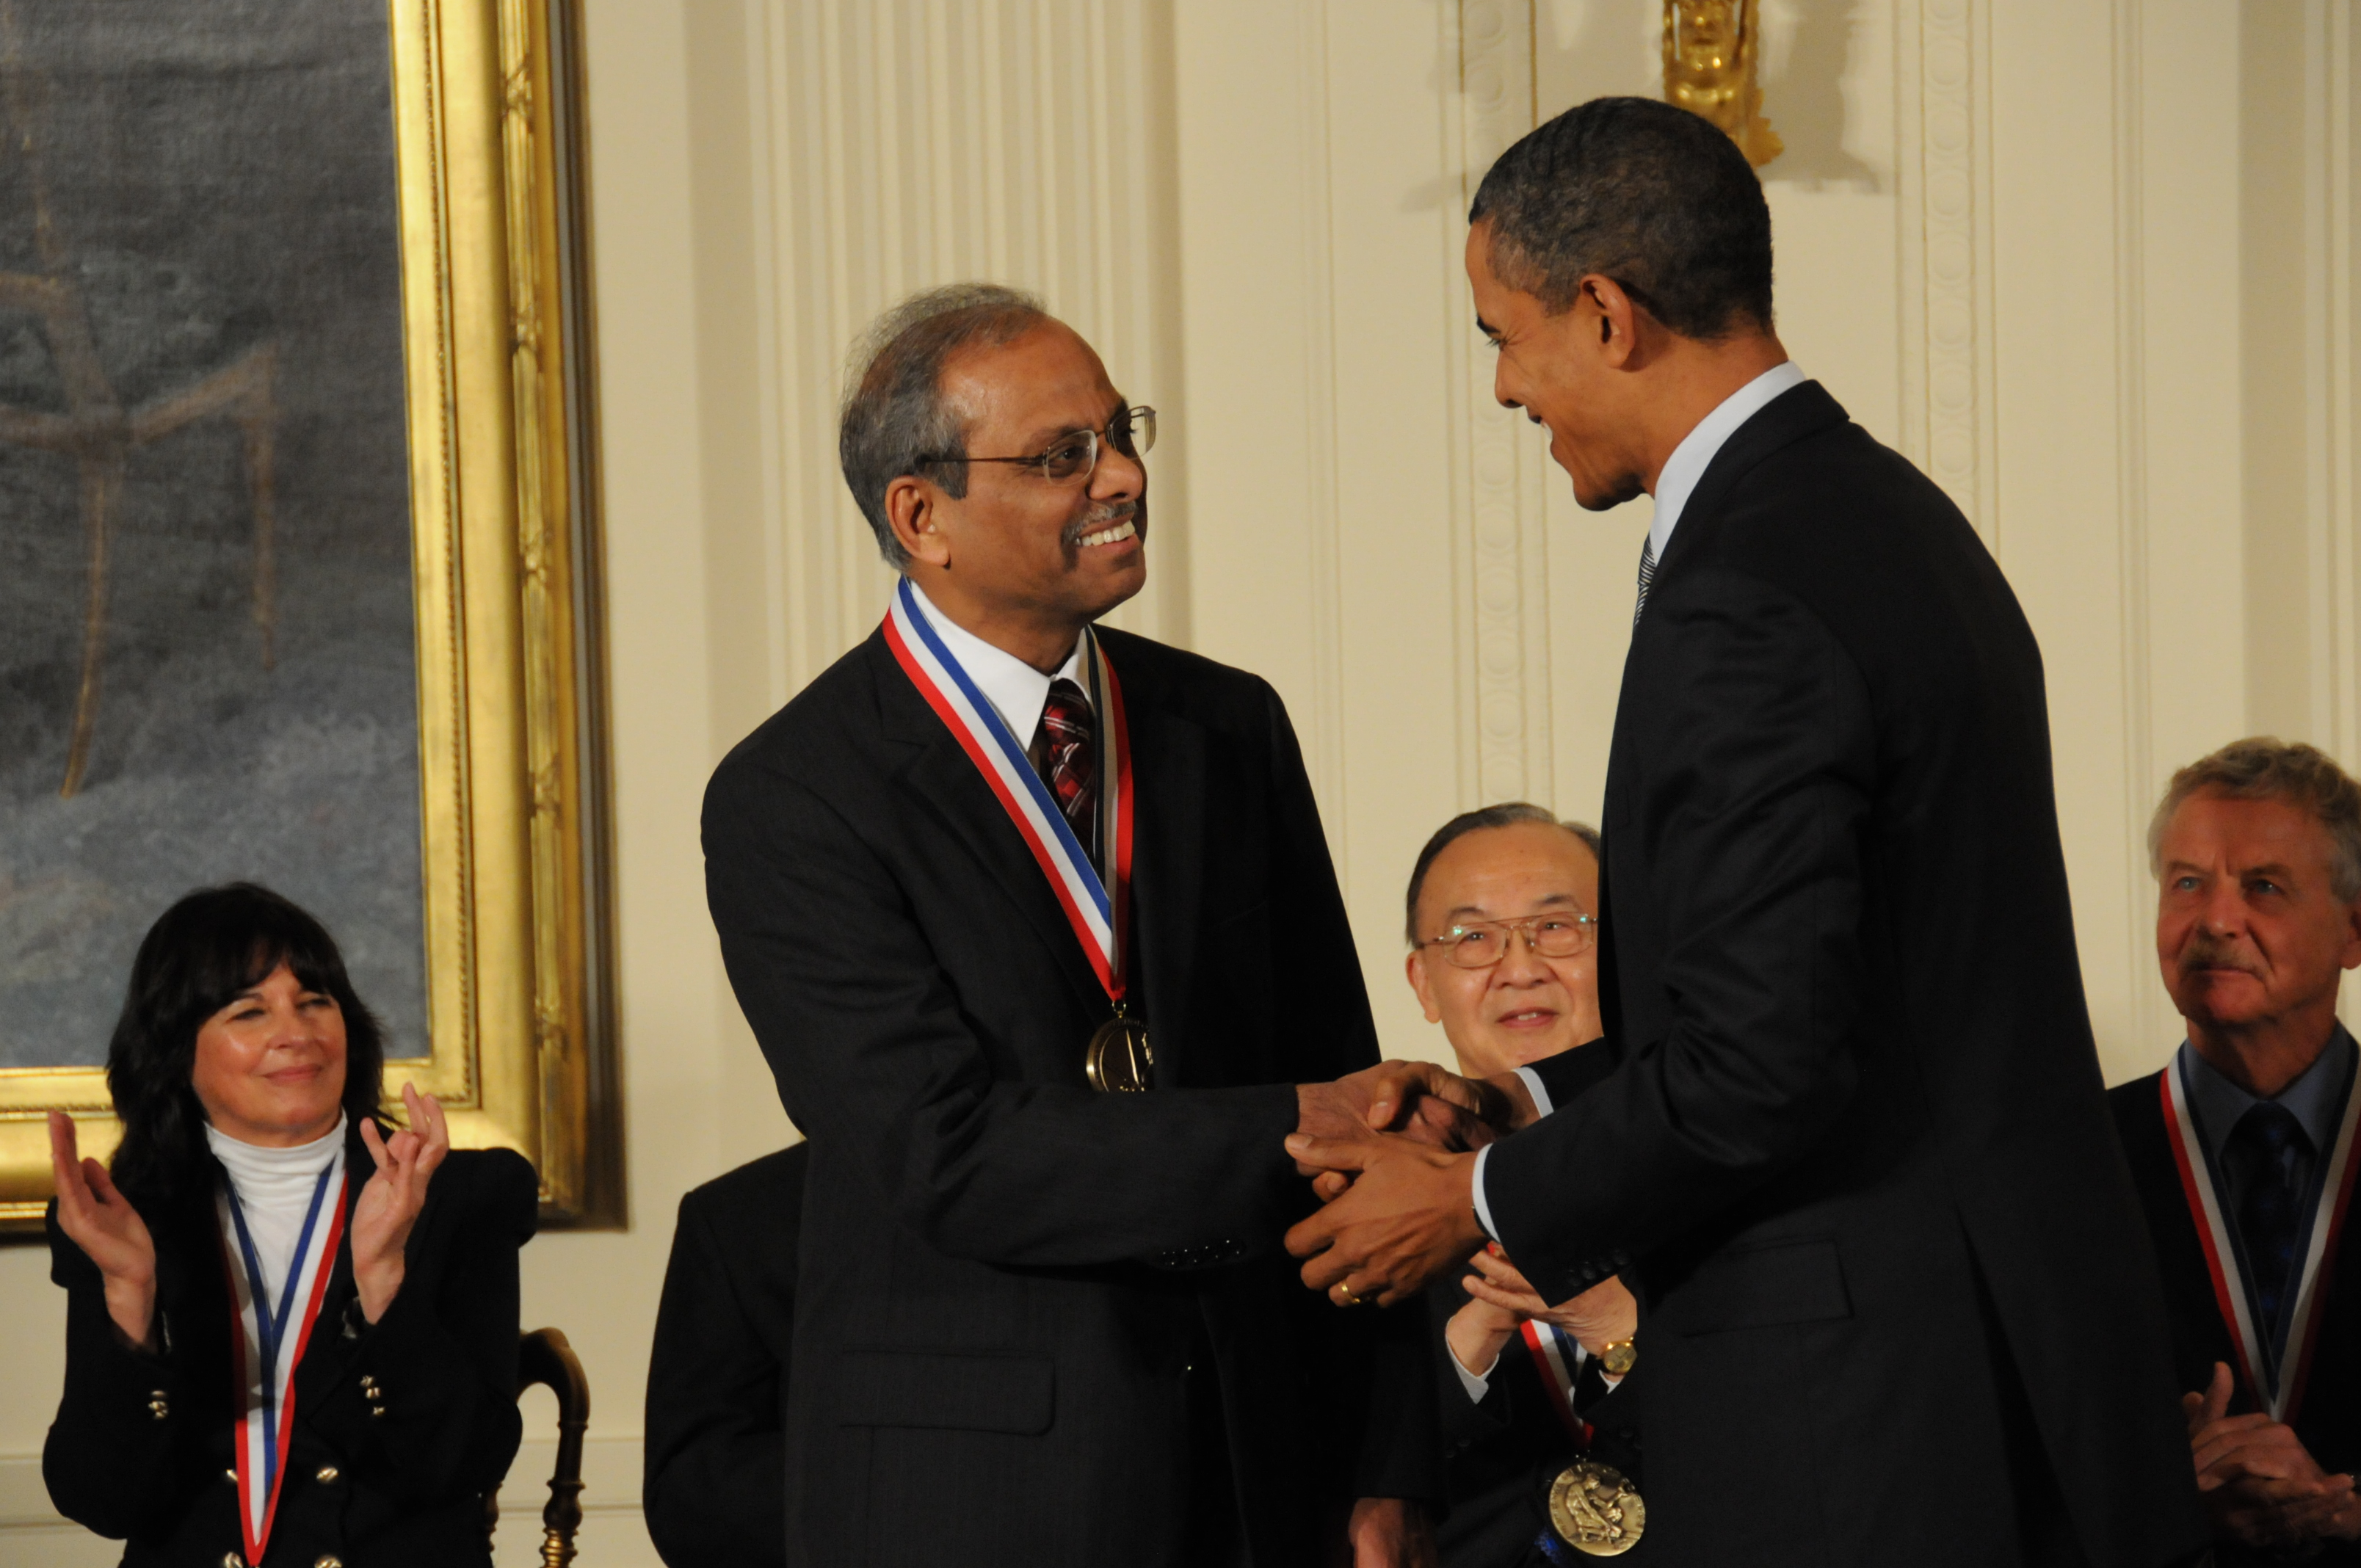 Rakesh Agrawal receives medal from President Obama